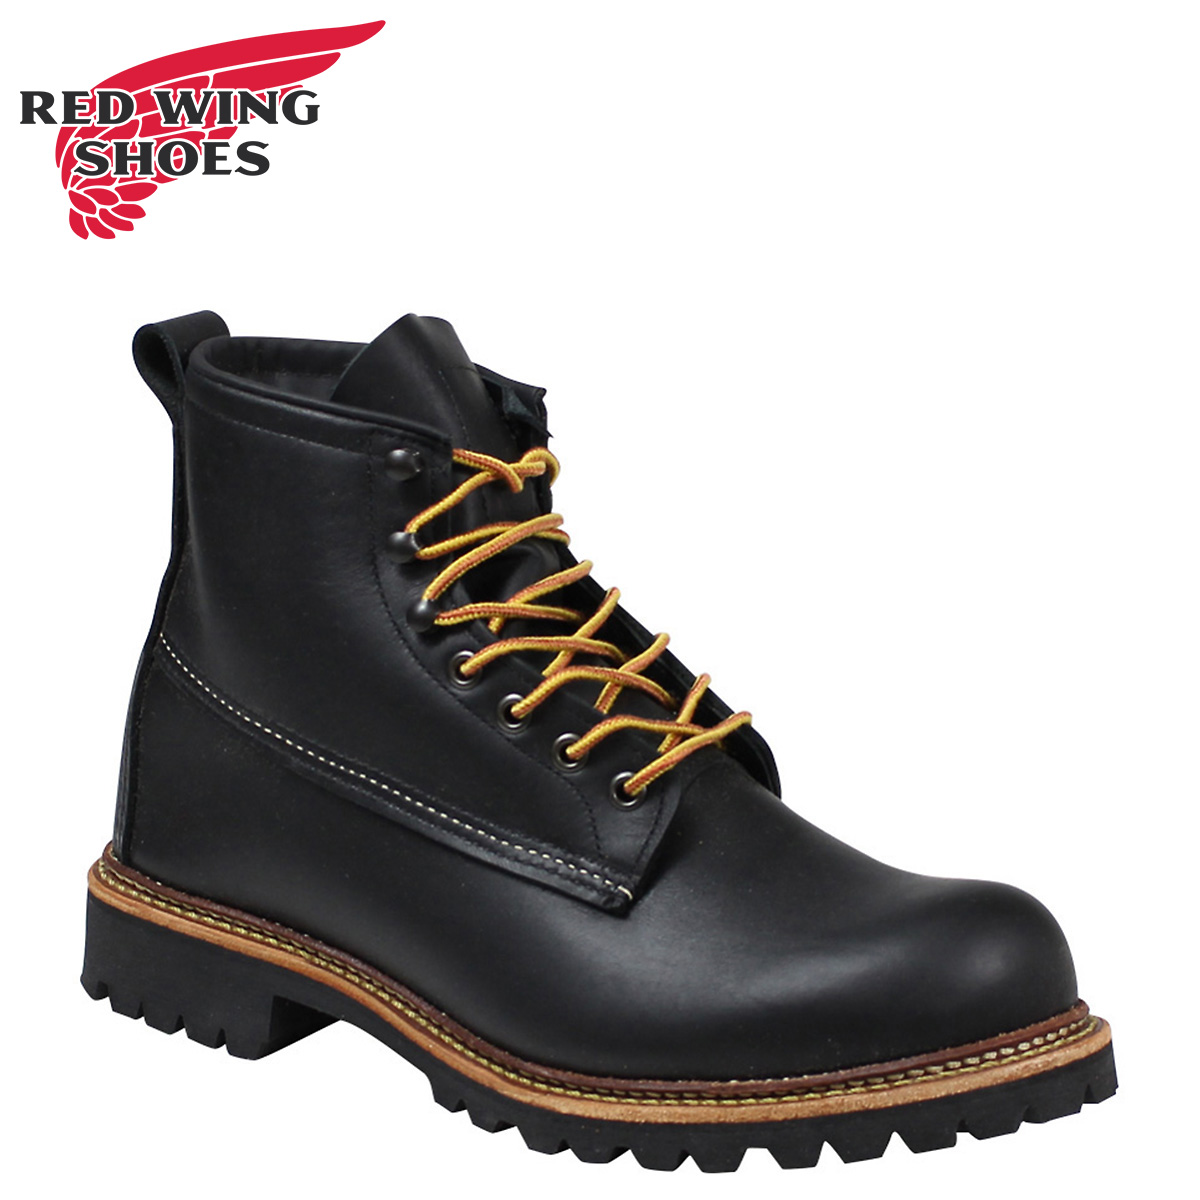 ALLSPORTS: Red Wing ice cutter, RED WING boots ICE CUTTER